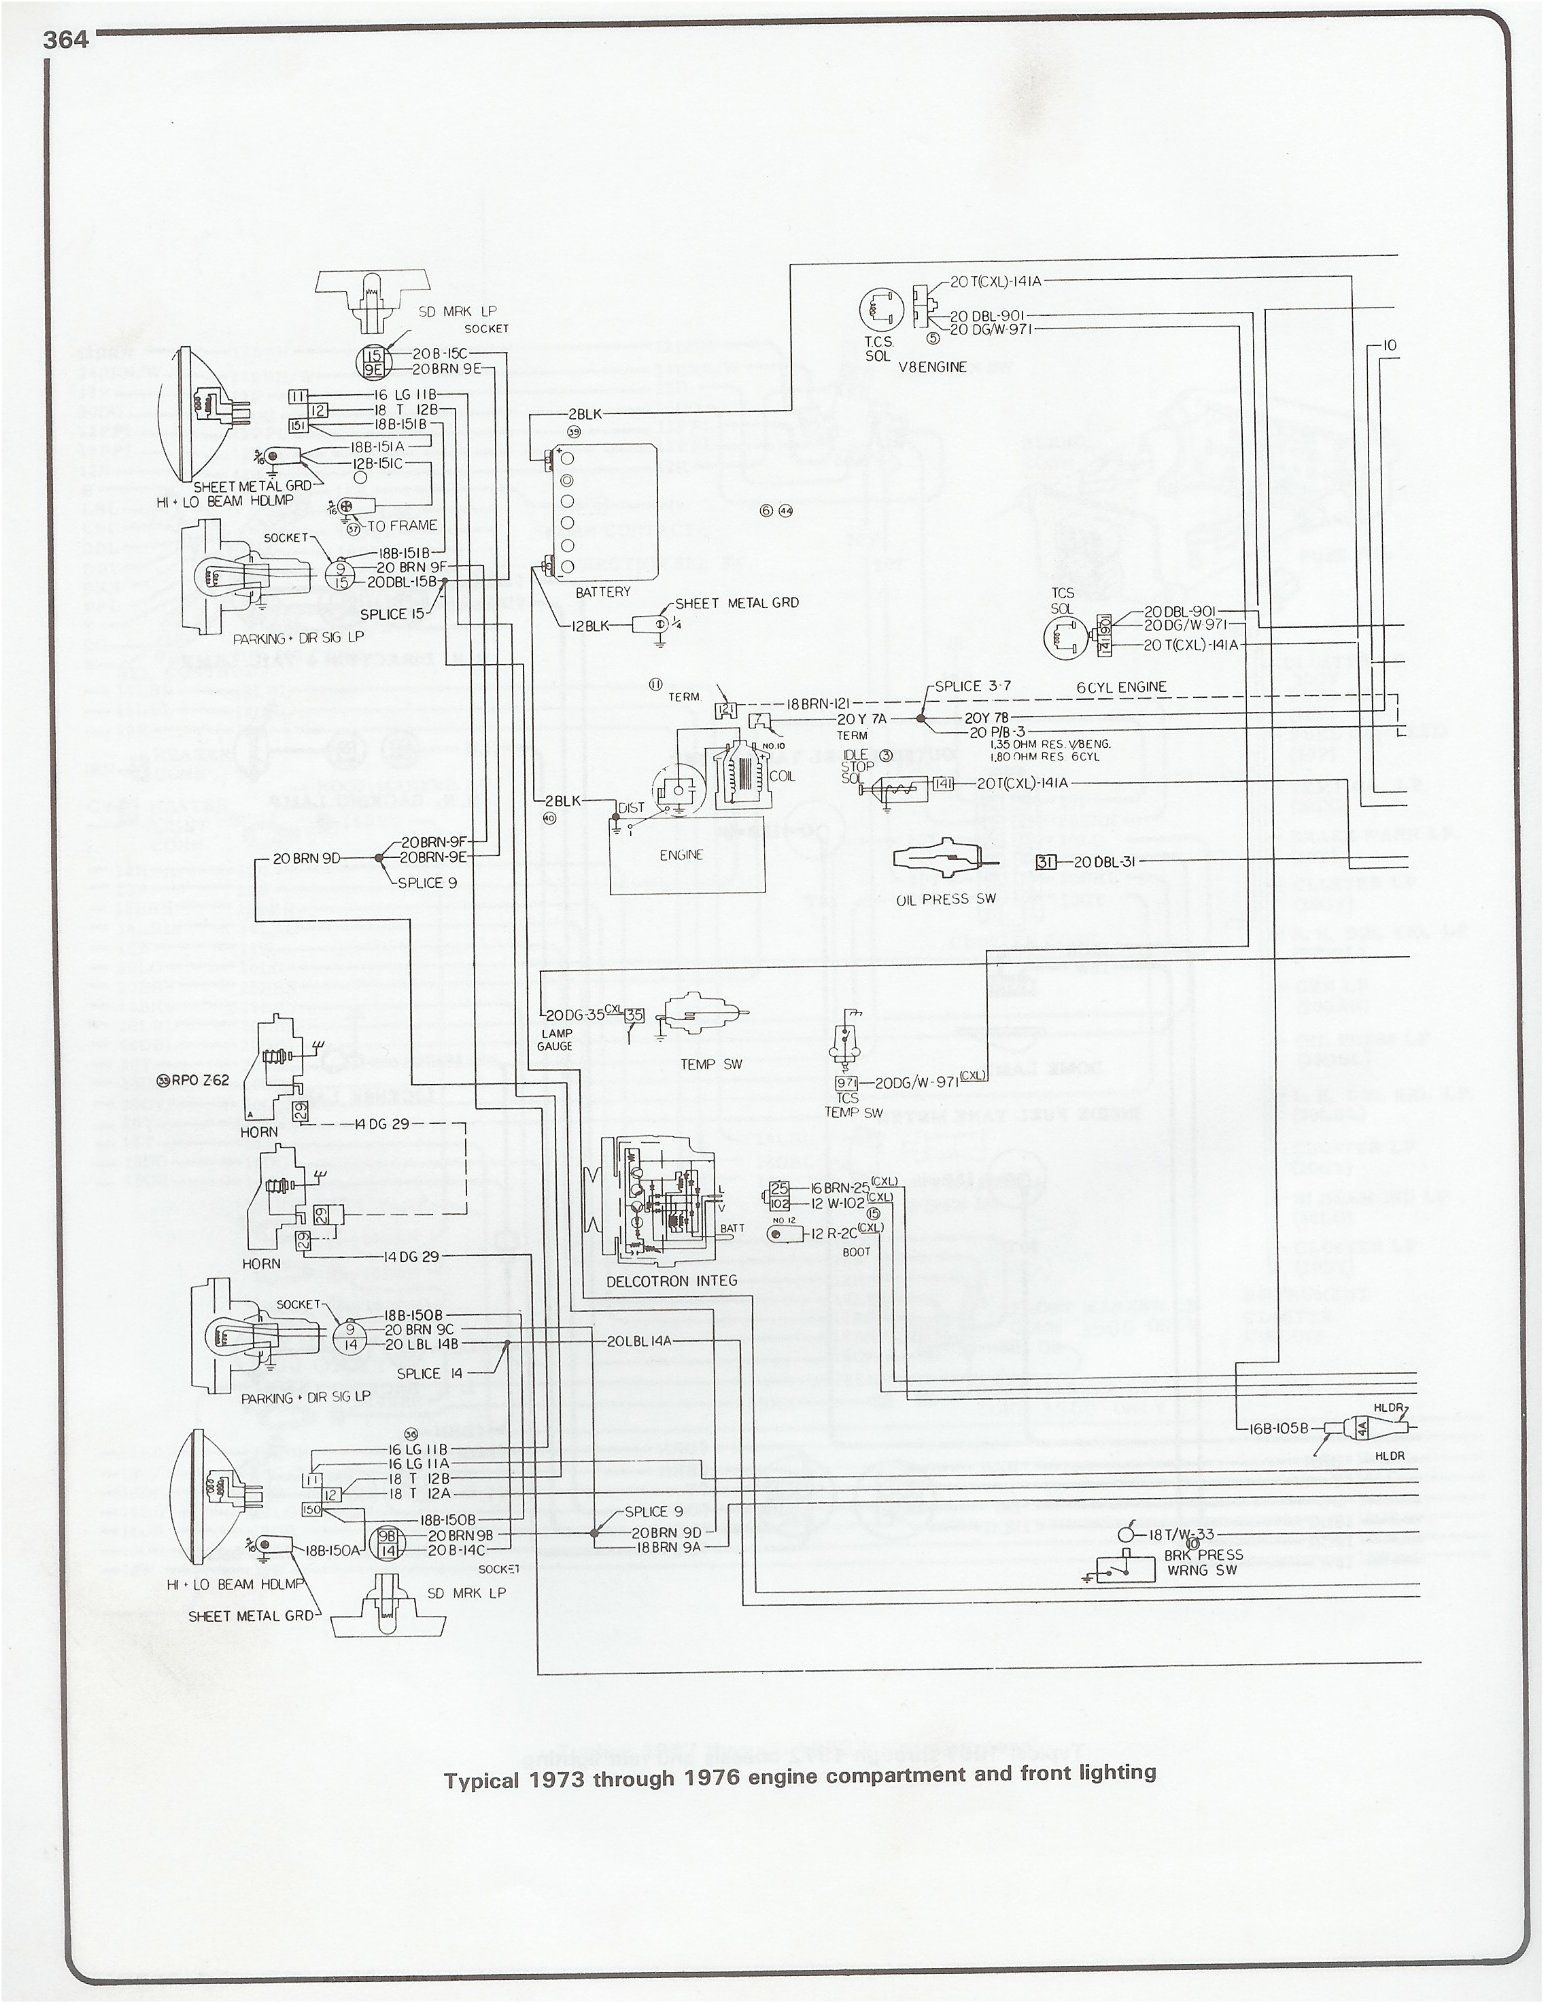 Chevy Pickup Wiring Diagram Wiring Diagram Yer